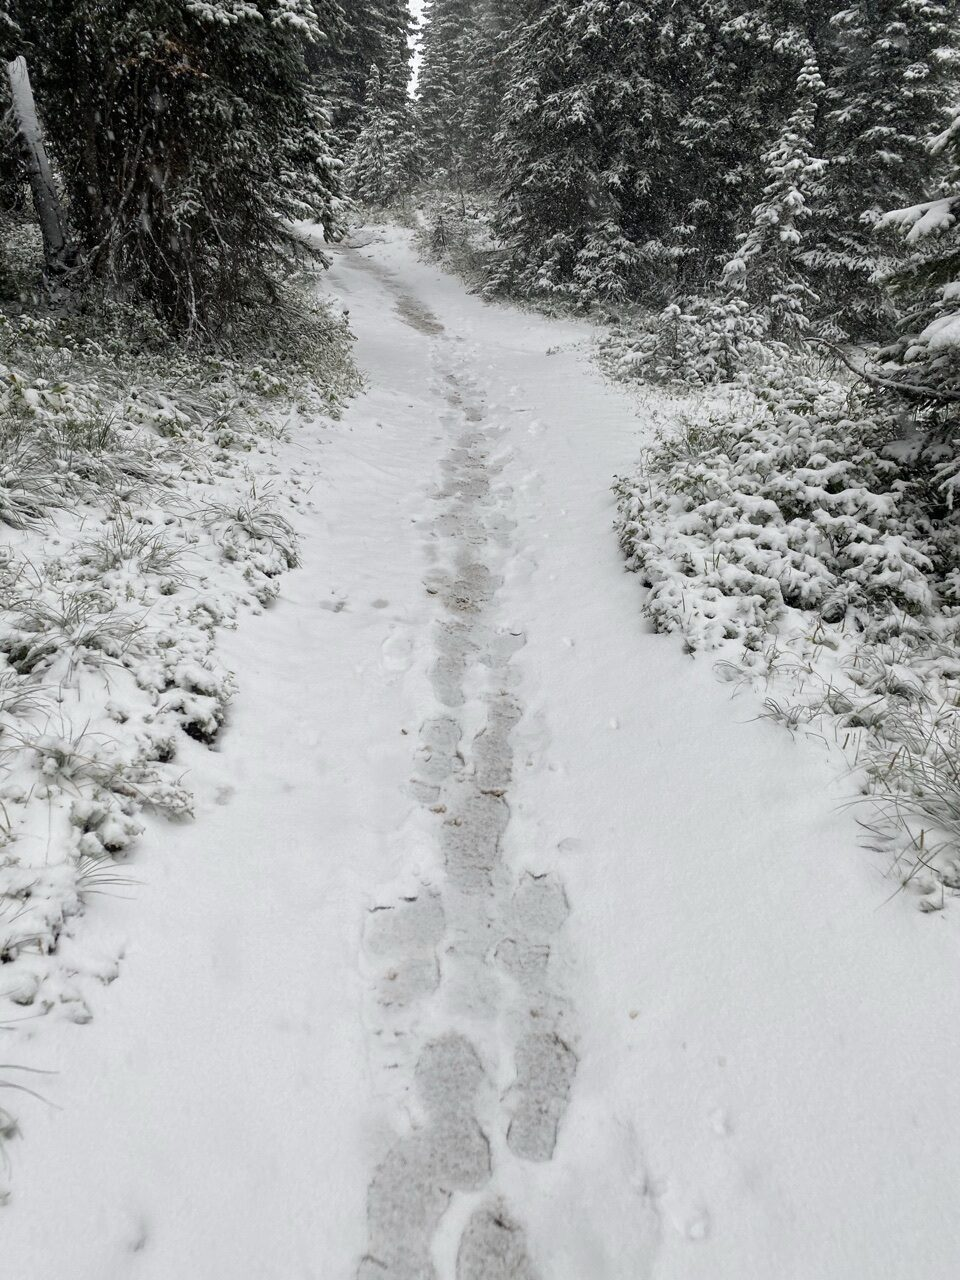 snow-covered hiking trail with footprints